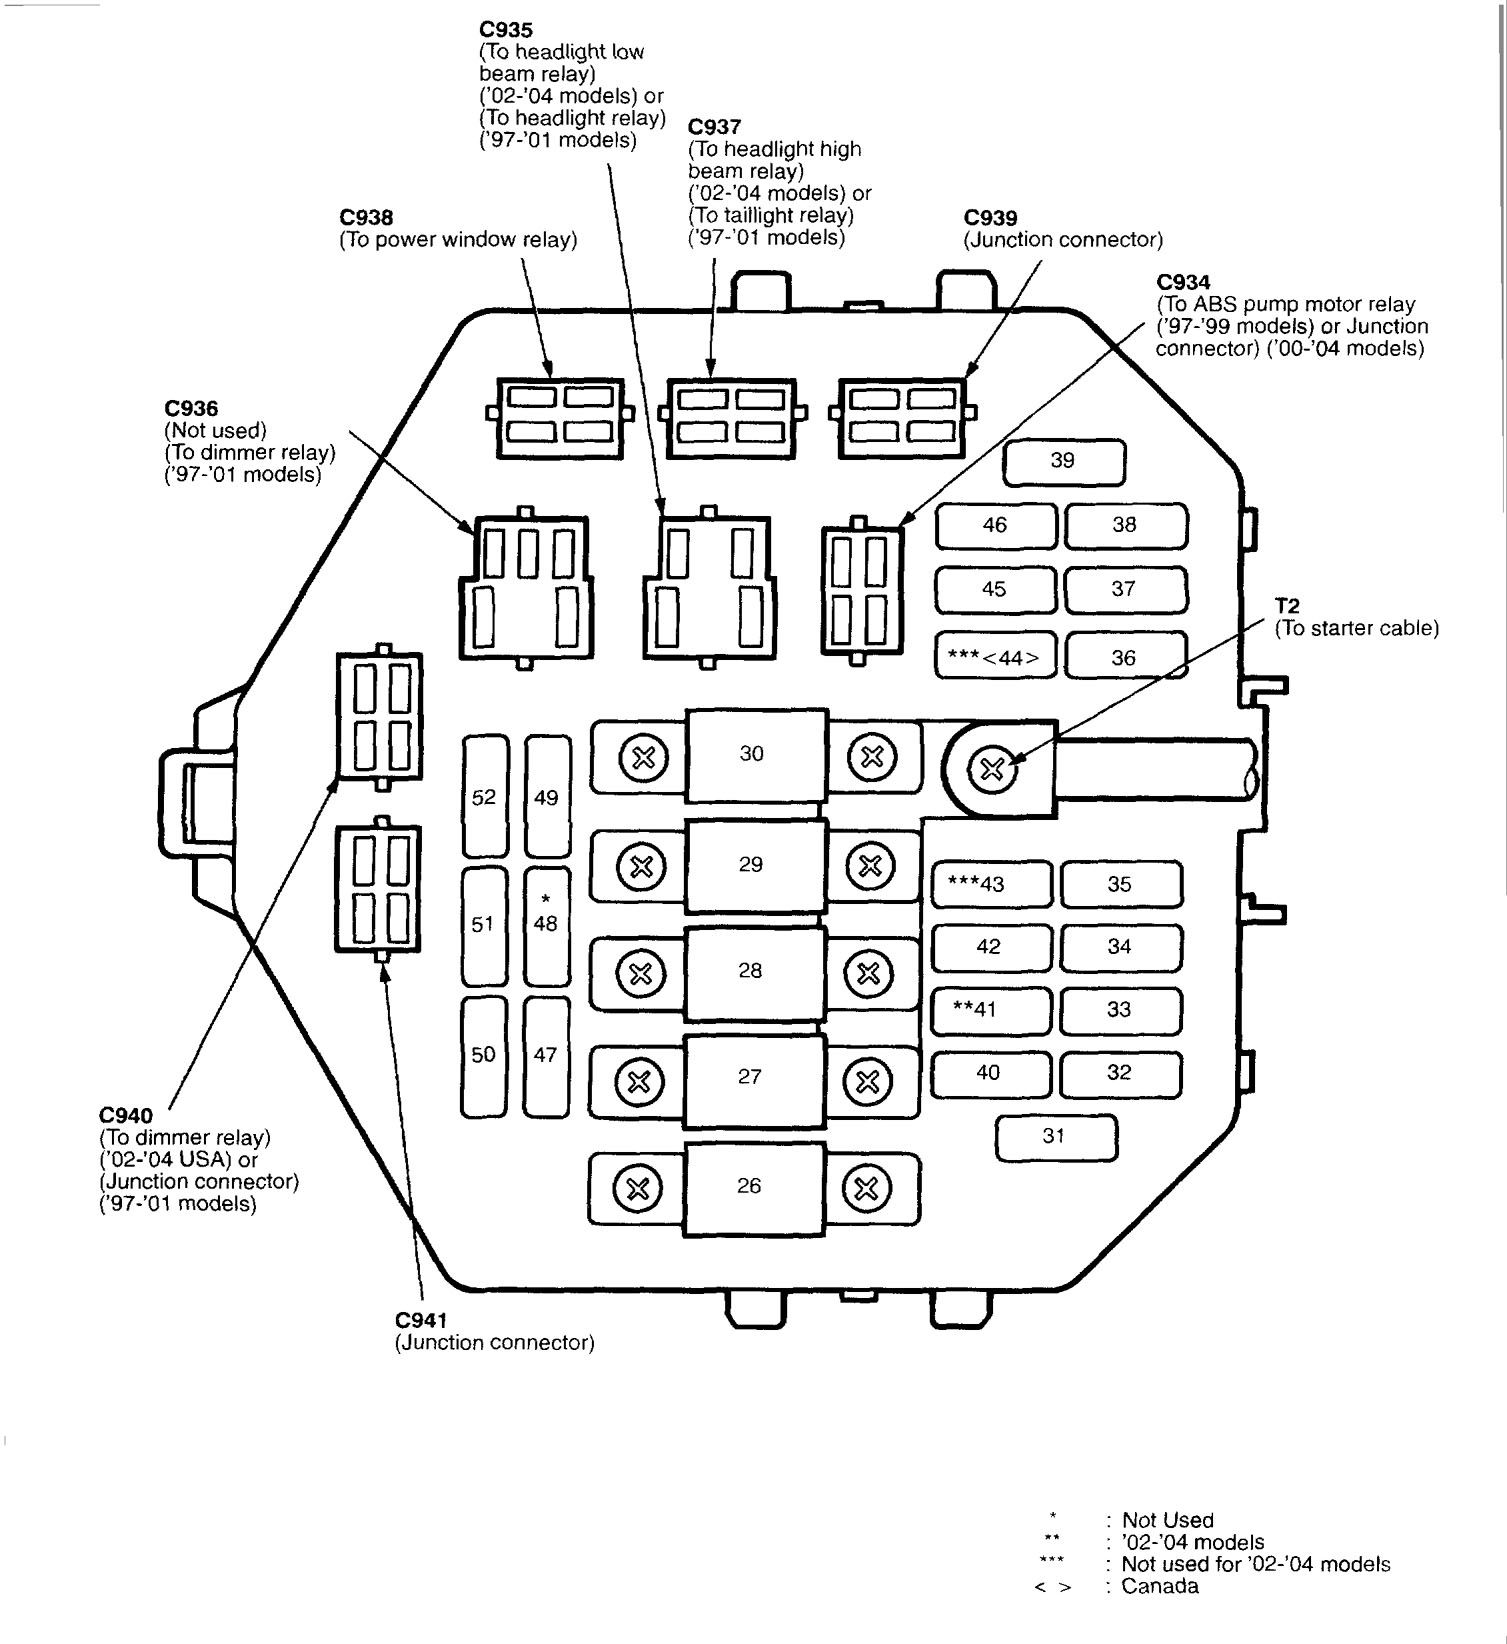 05 Pacifica Fuse Box Manual Guide Wiring Diagram On Chrysler Immobilizer Cat 6 Wires Fantastic Fan